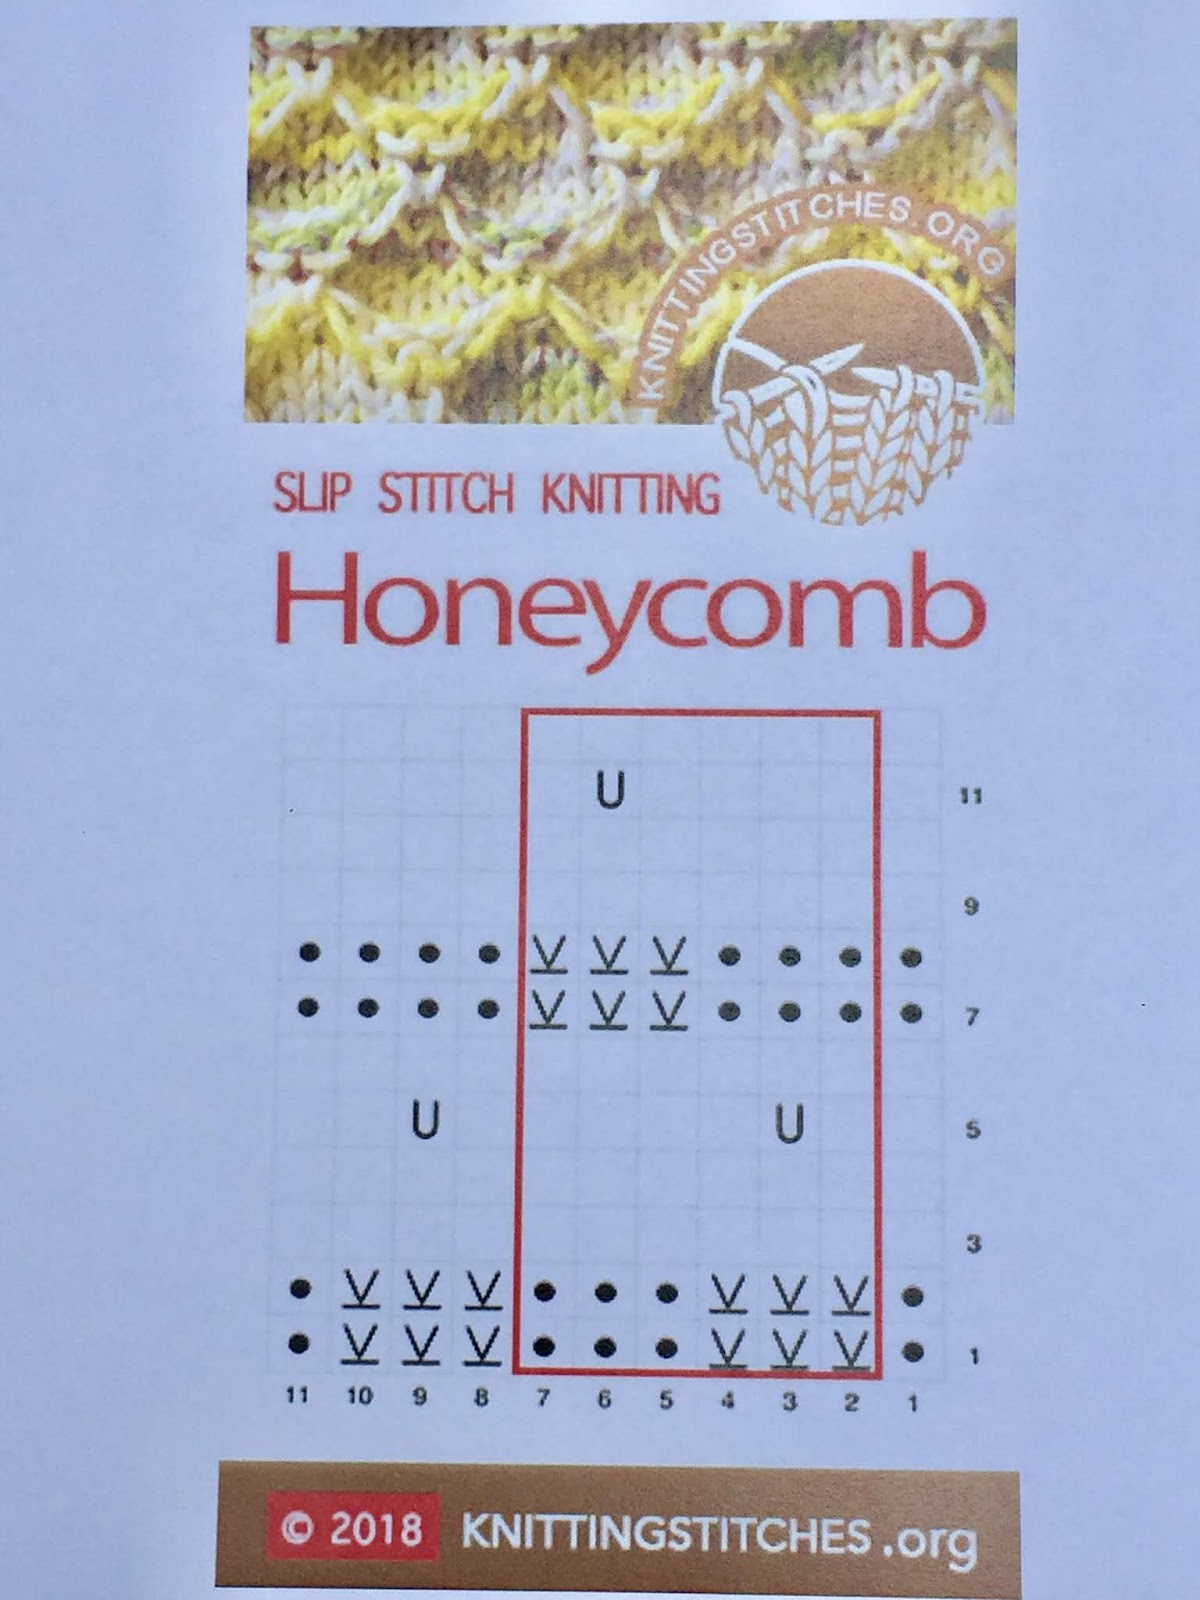 Knitting Stitches 2018 - Honeycomb stitch